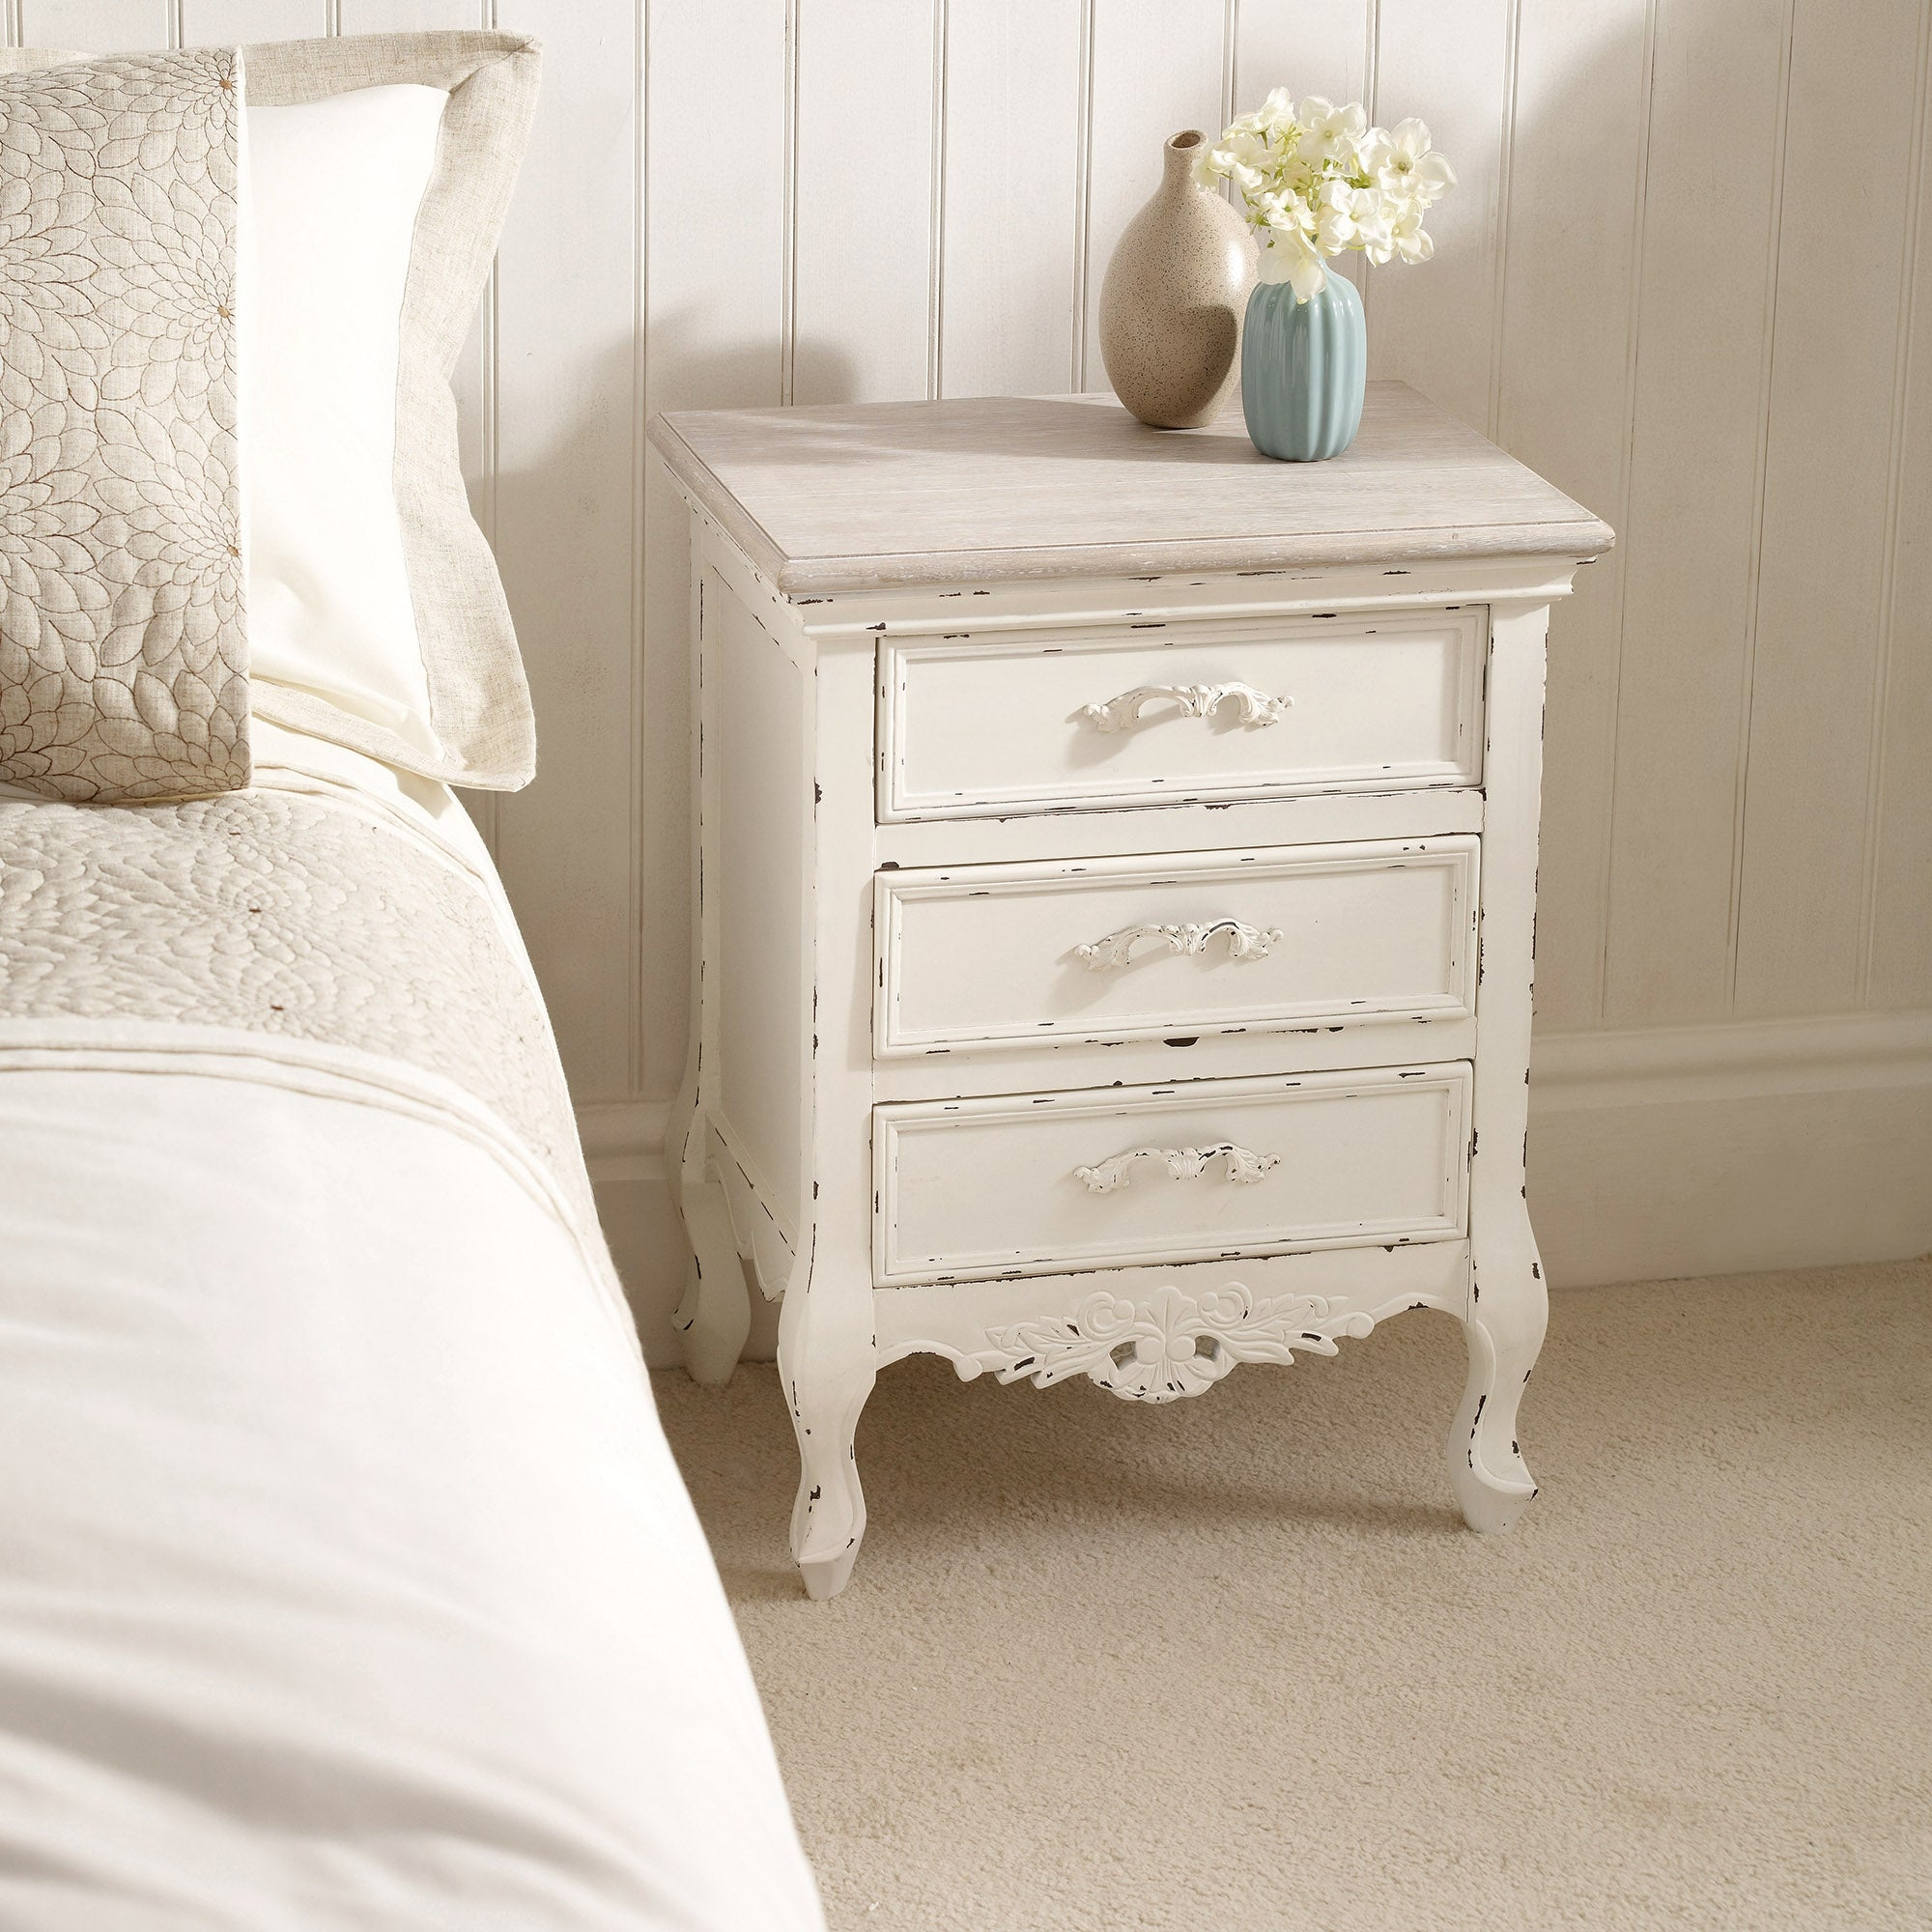 Photo of Camille ivory 3 drawer bedside table cream